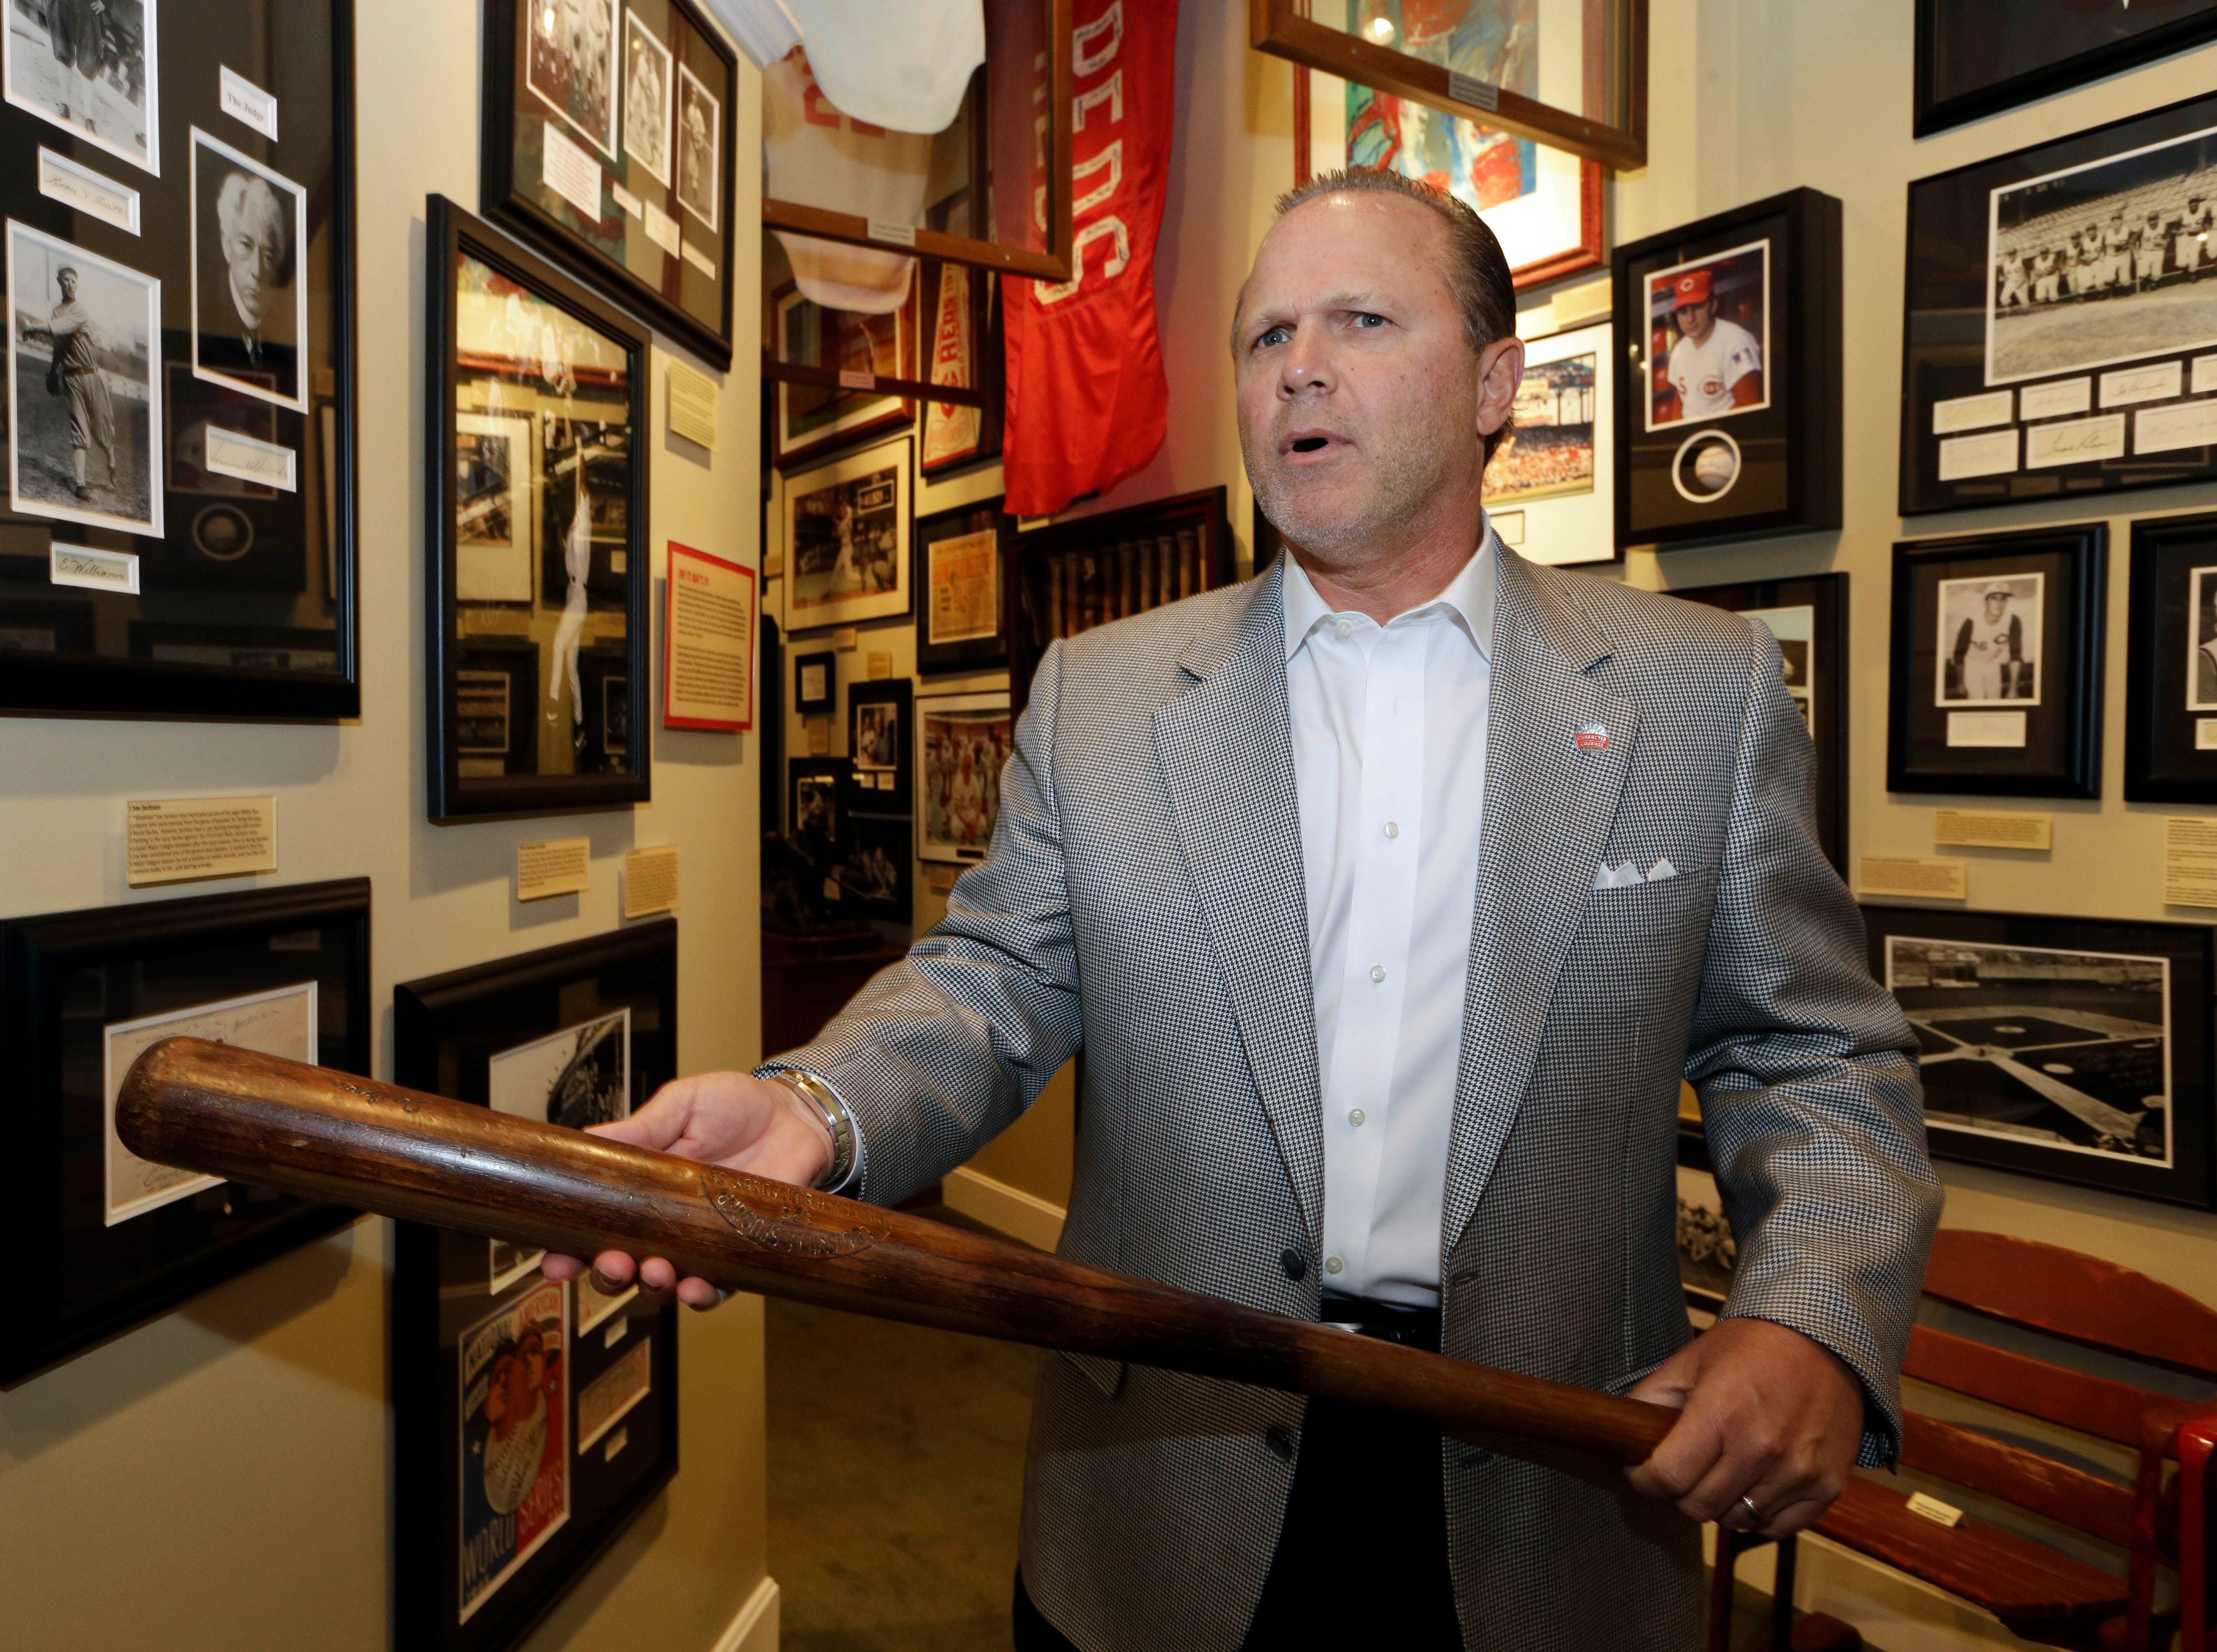 Owner Bob Crotty holds a bat used by Shoeless Joe Jackson as he stands next to a display on the 1919 Chicago White Sox scandal, Tuesday, July 23, 2013, inside the Green Diamond Gallery in Cincinnati. The club houses baseball memorabilia and allows members to hear inside stories from the game's greats in monthly meetings. (AP Photo/Al Behrman)